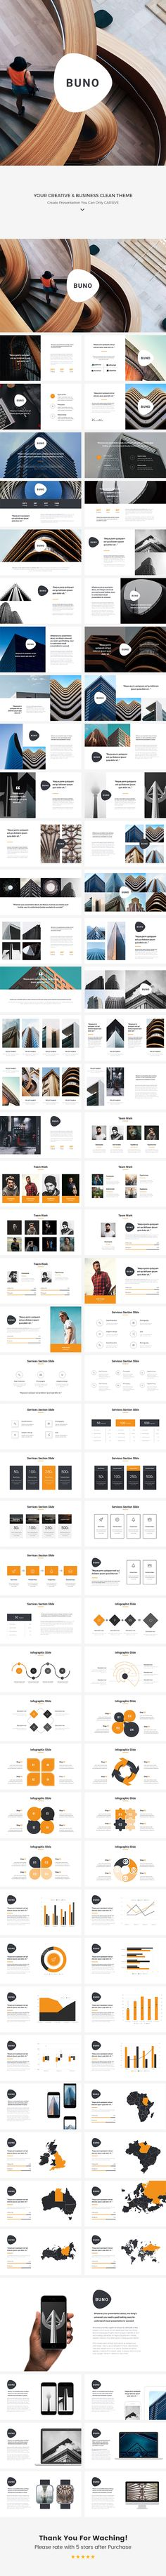 Buno Clean Powerpoint Template